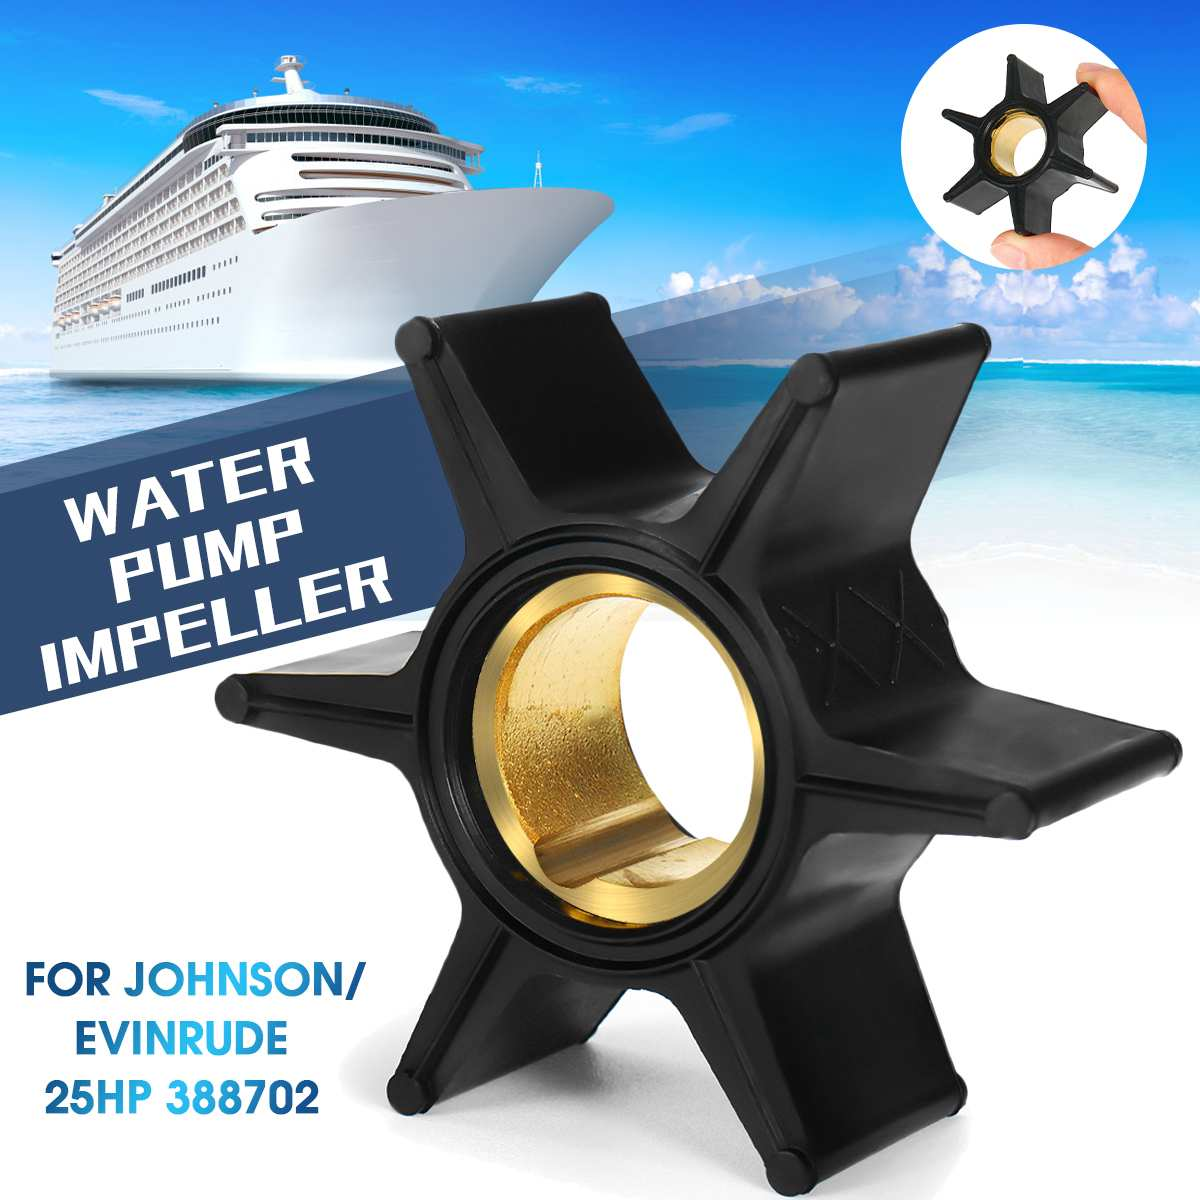 Marine Water Pump Impeller Boat Engine Impeller 6 Blade for Johnson / Evinrude 25HP 388702 Durable Boat Parts Accessories